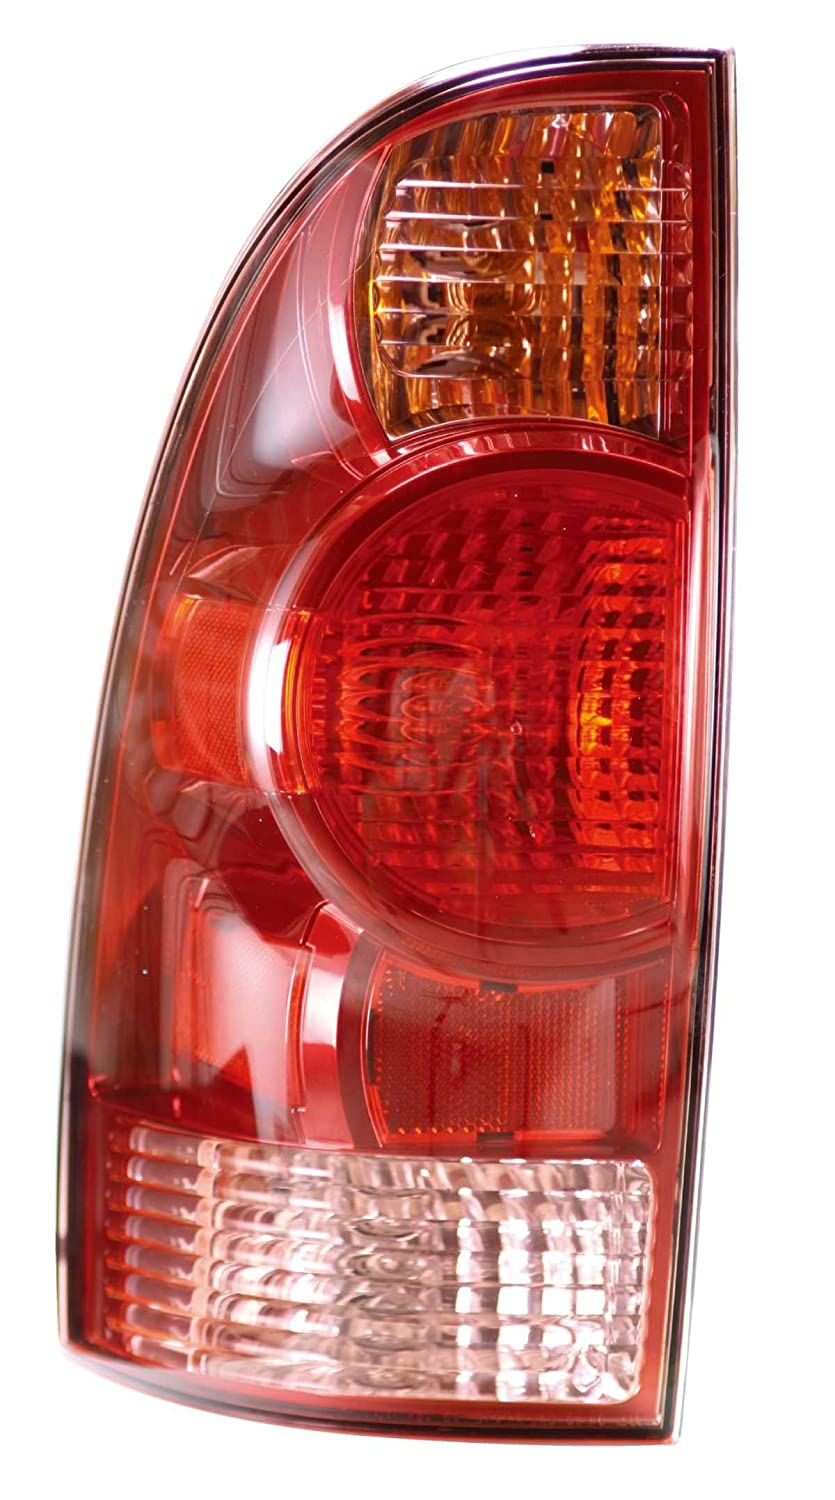 Prime Choice Auto Parts KAPTY50063A1L Tail Light Assembly